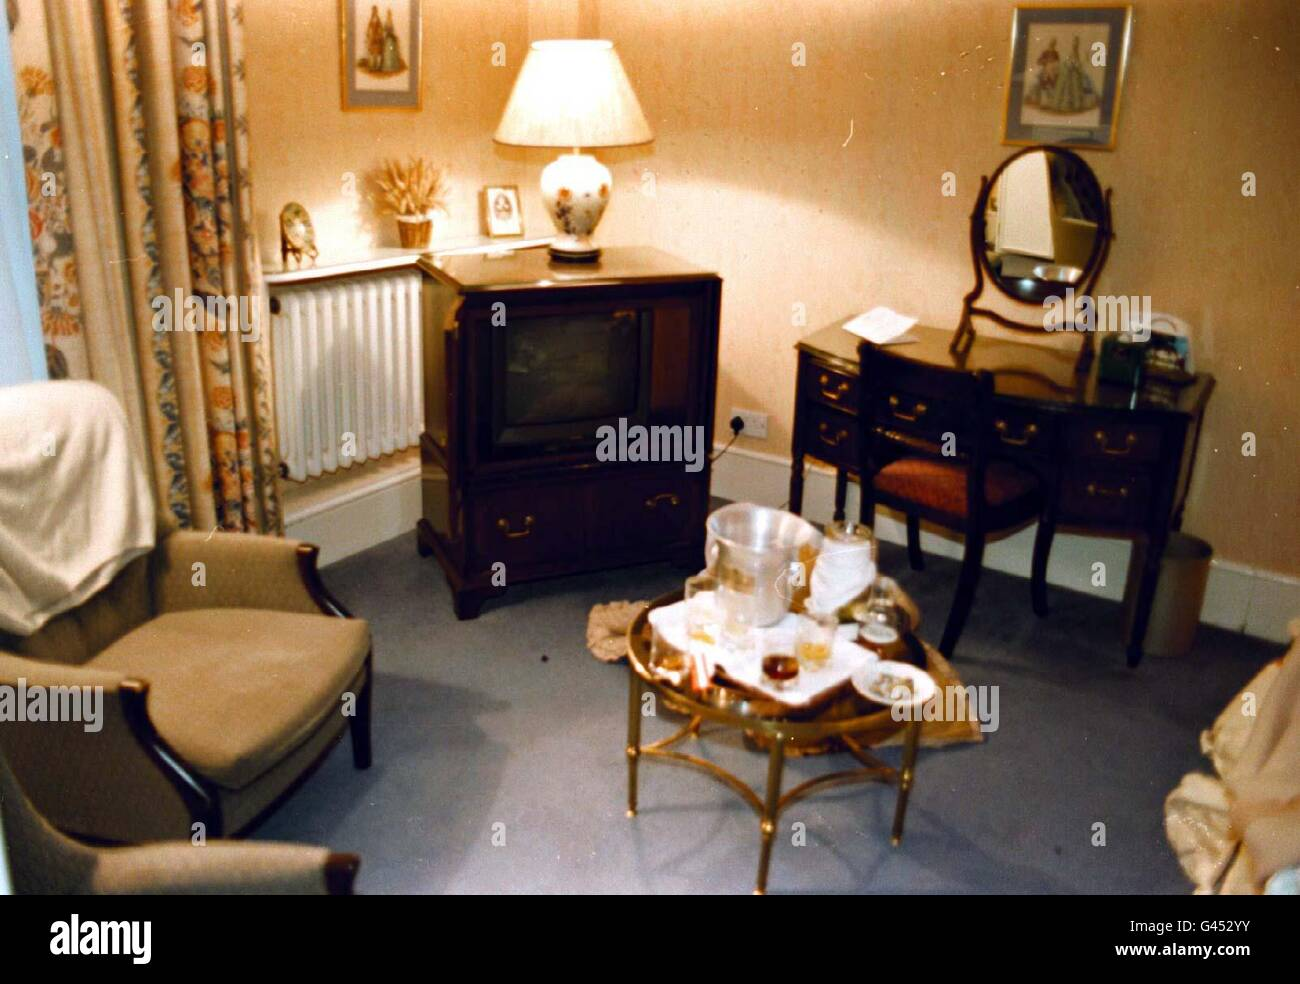 Room No 10 at The West Park Lodge  Hotel Nr Hadley Wood today (Sun) where a police raid took place early this morning Stock Photo